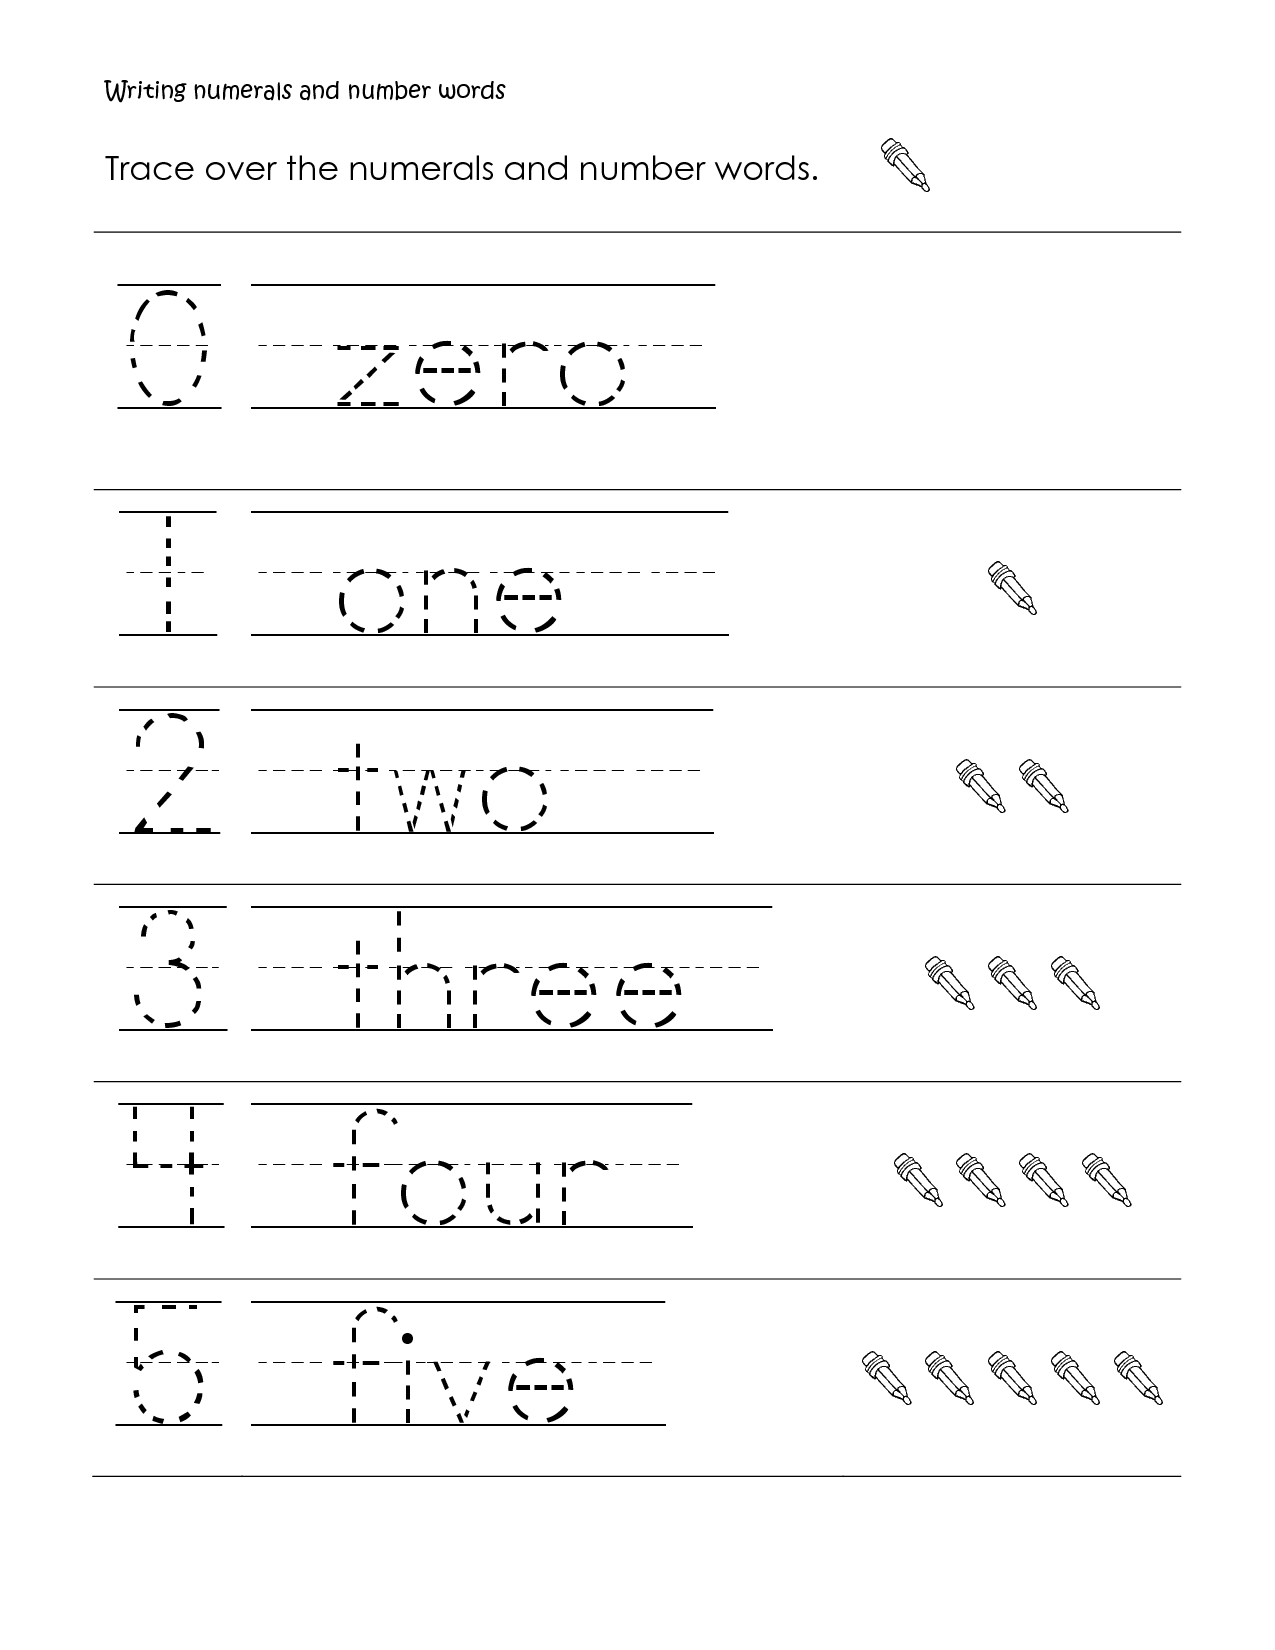 worksheet Preschool Worksheets Age 4 78 images about home school on pinterest kindergarten worksheets printable numbers and biography project